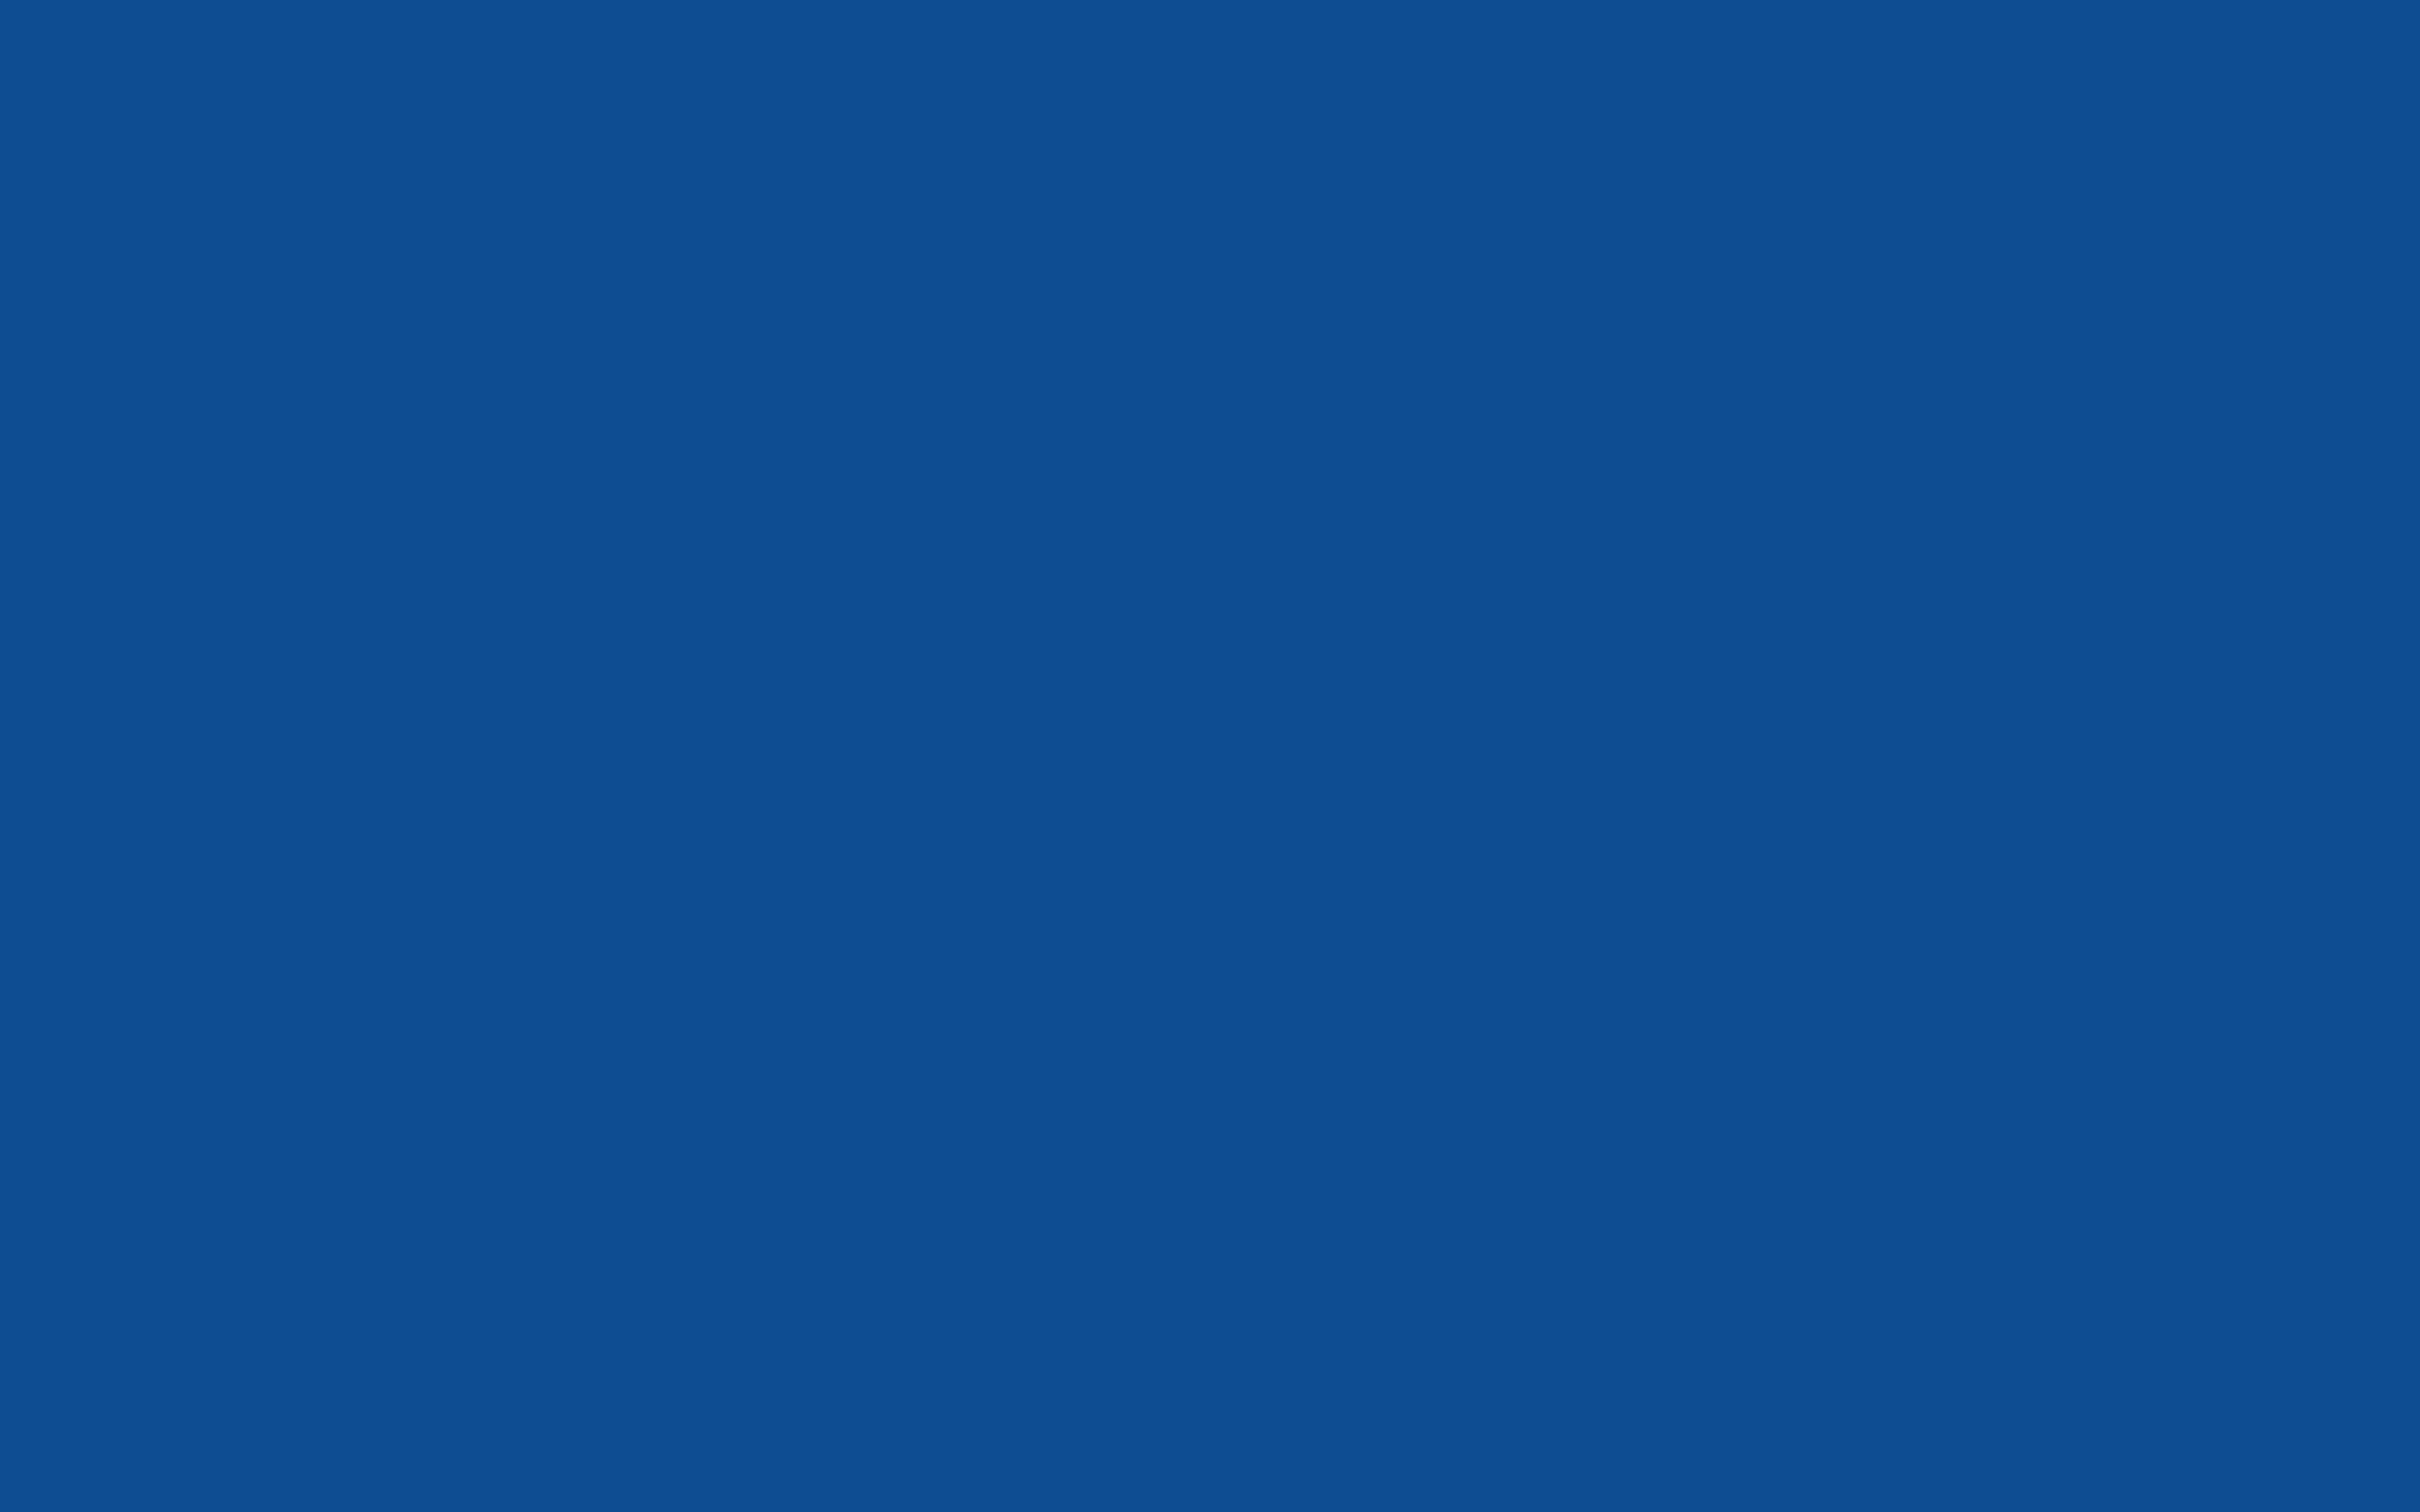 2560x1600 Yale Blue Solid Color Background